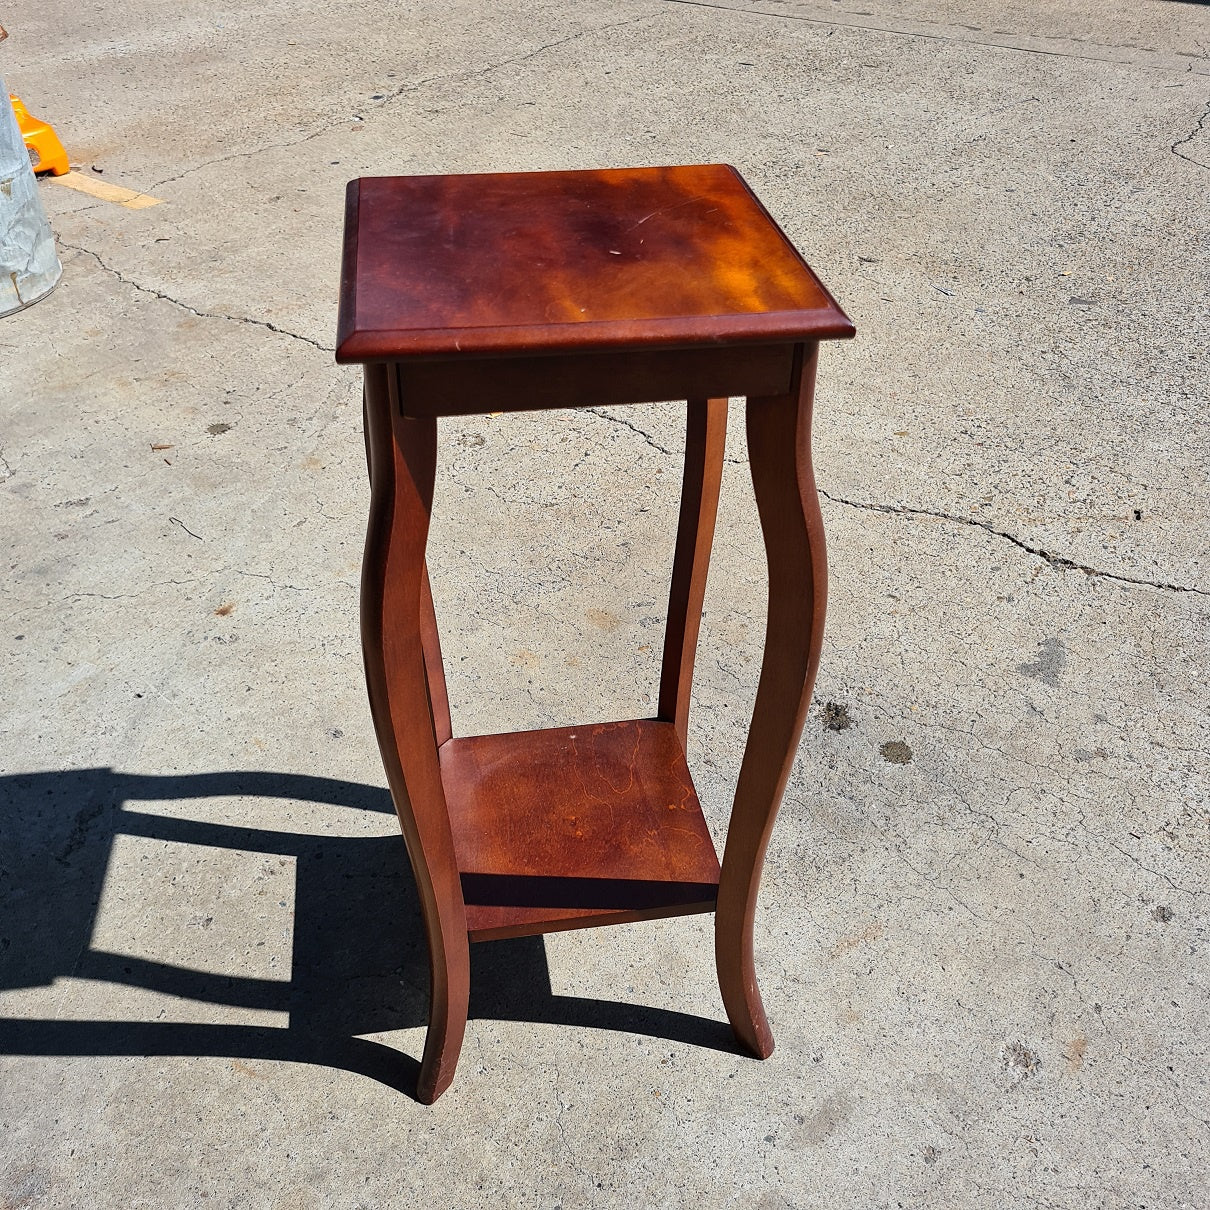 Retro Timber Pinth - 71cm Tall